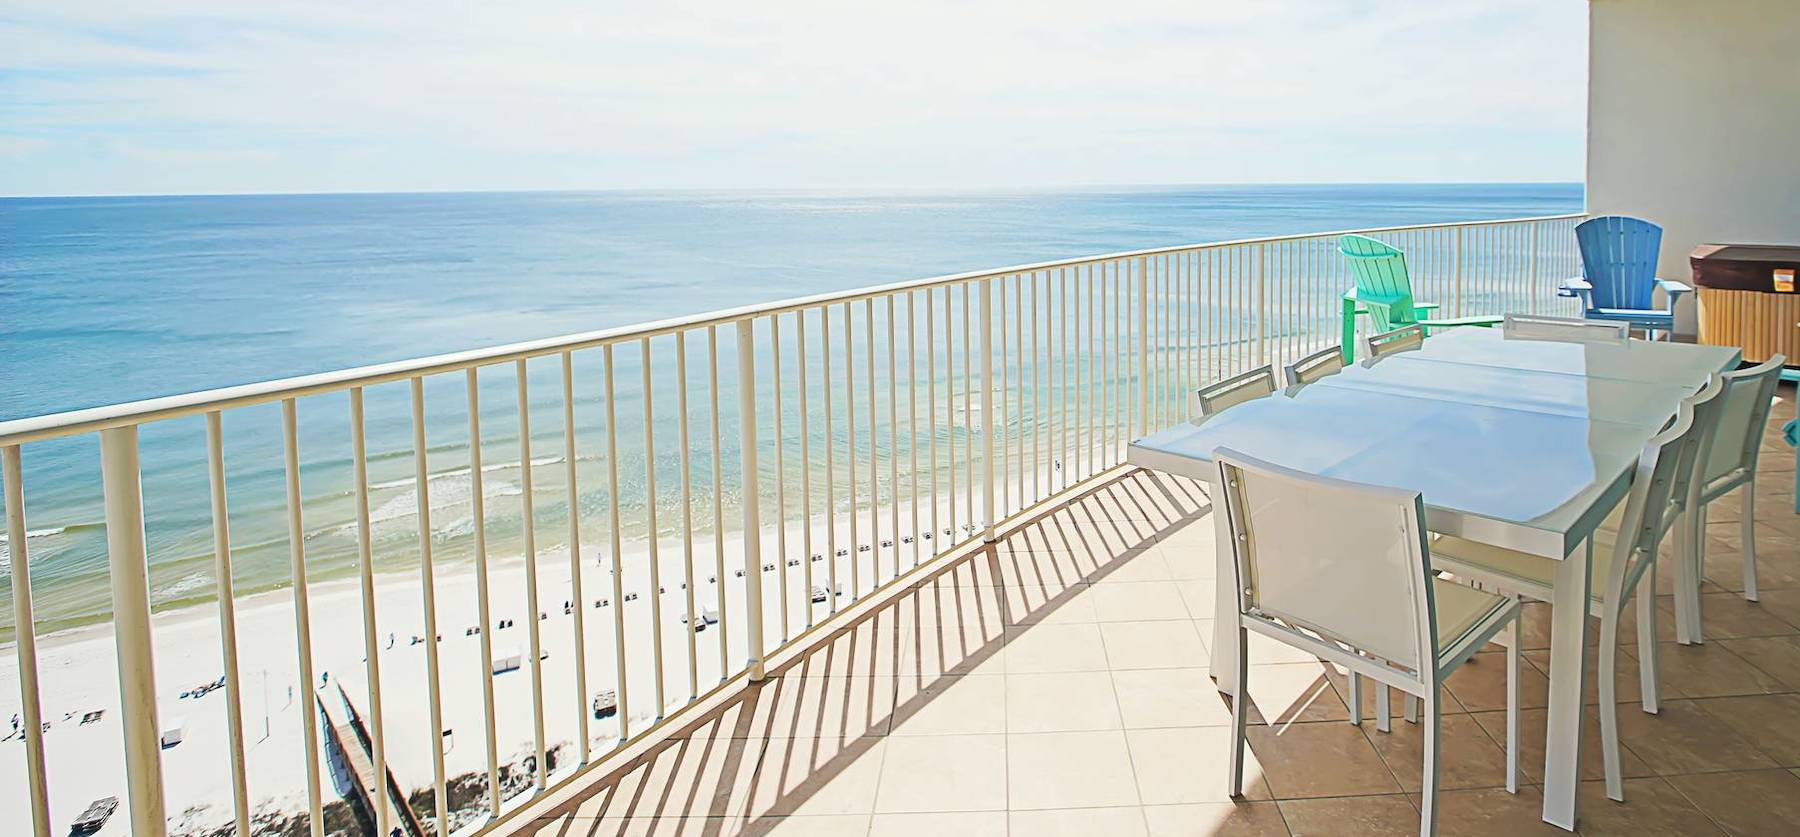 white patio table with chairs on condo patio at gulf shores resort over looking beach and gulf of mexico